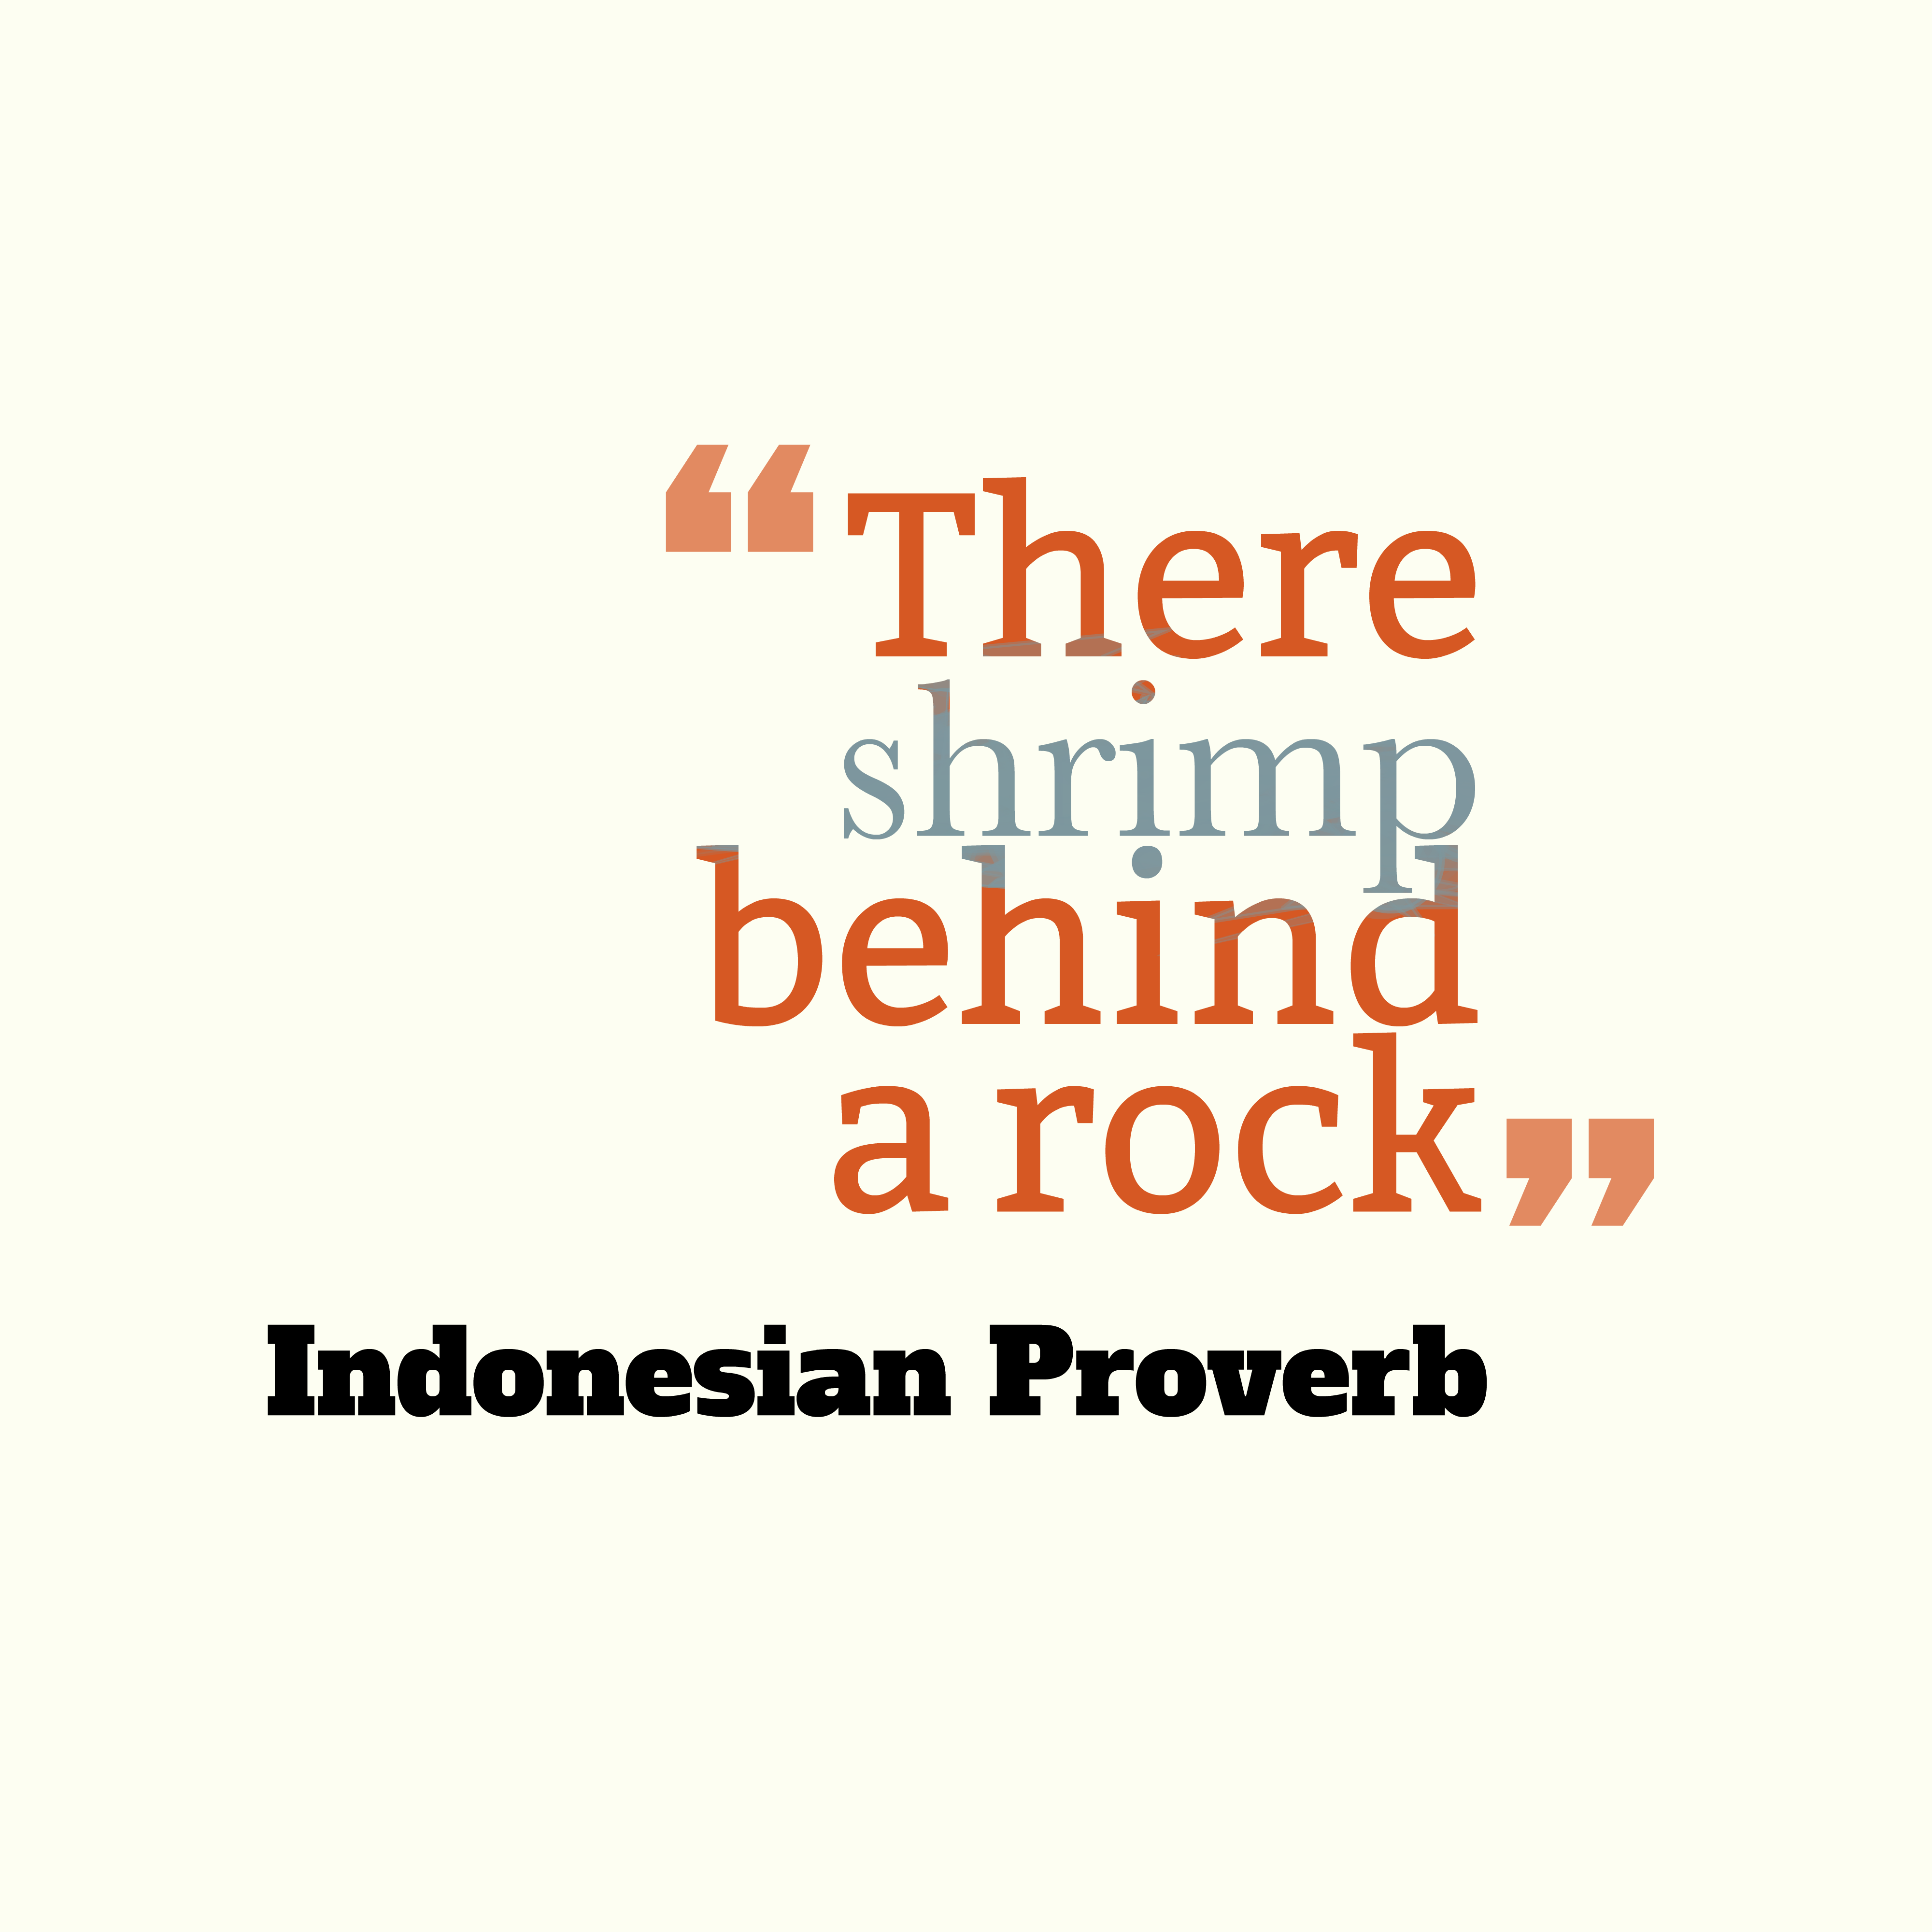 Quotes image of There shrimp behind a rock